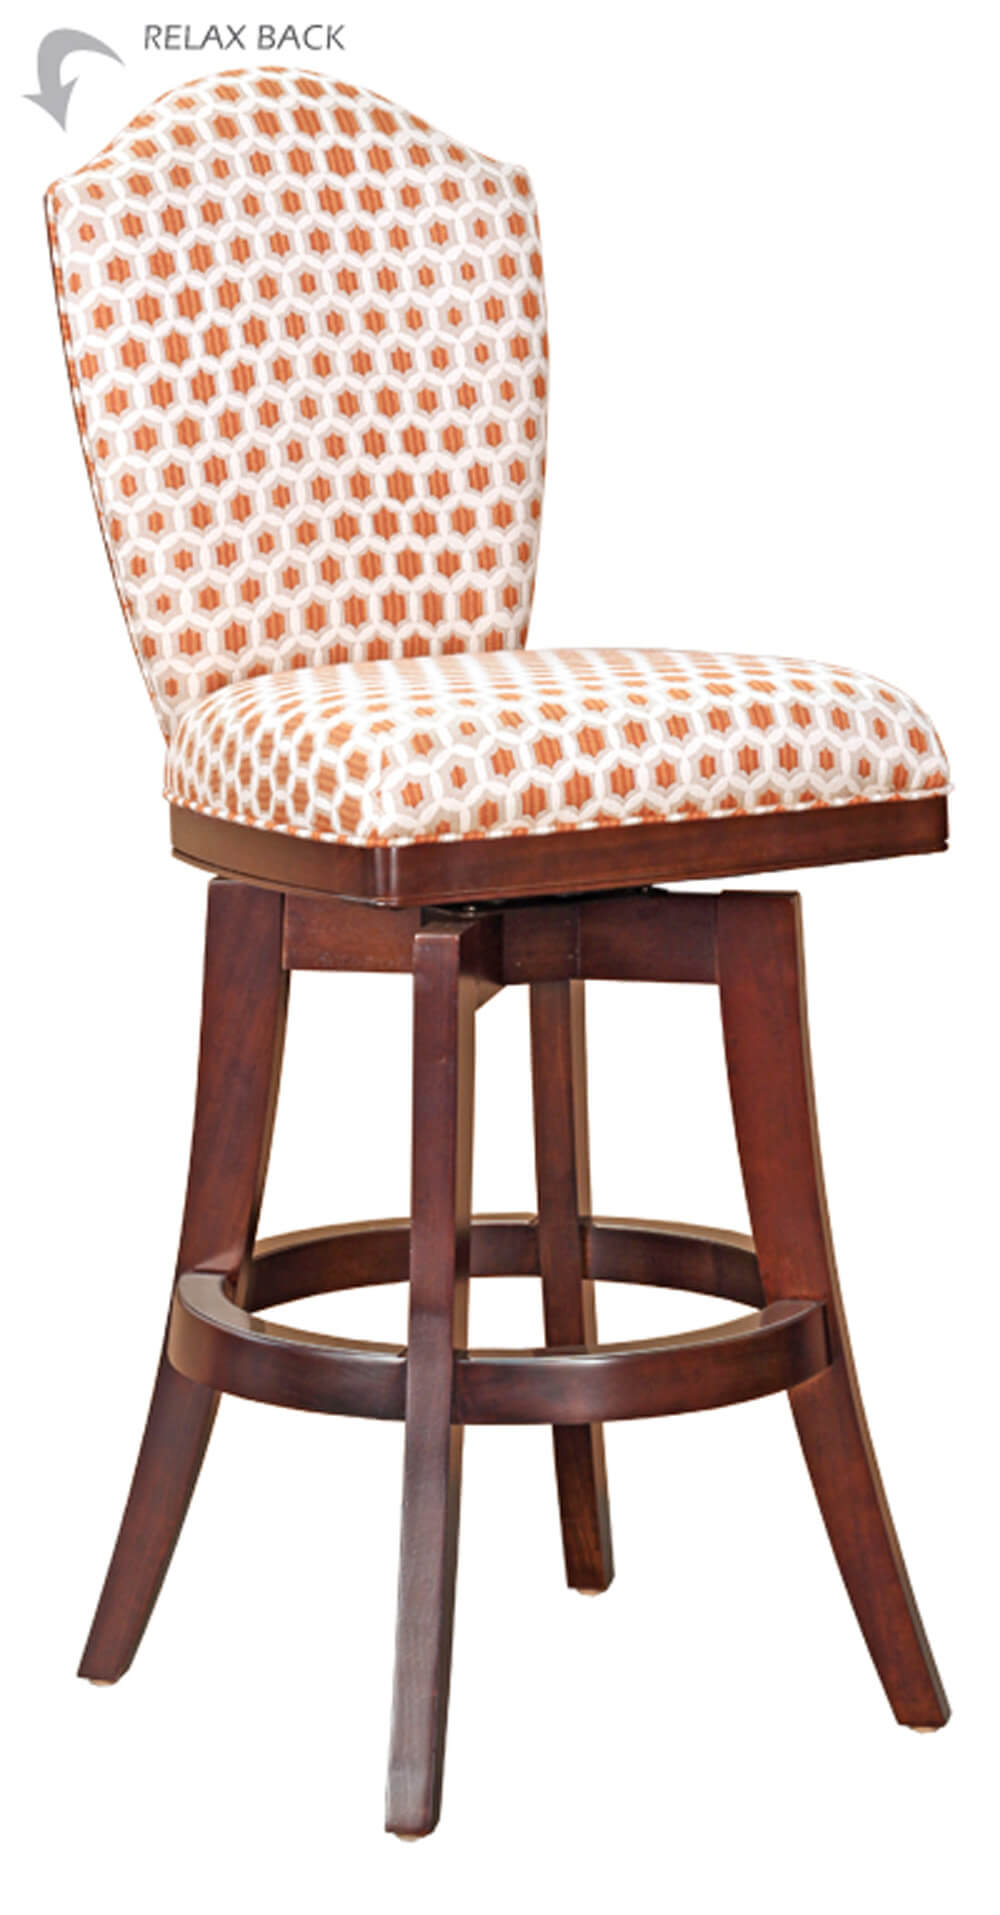 California house s1620 bar stool - Beautify your bar area with unique barstools ...